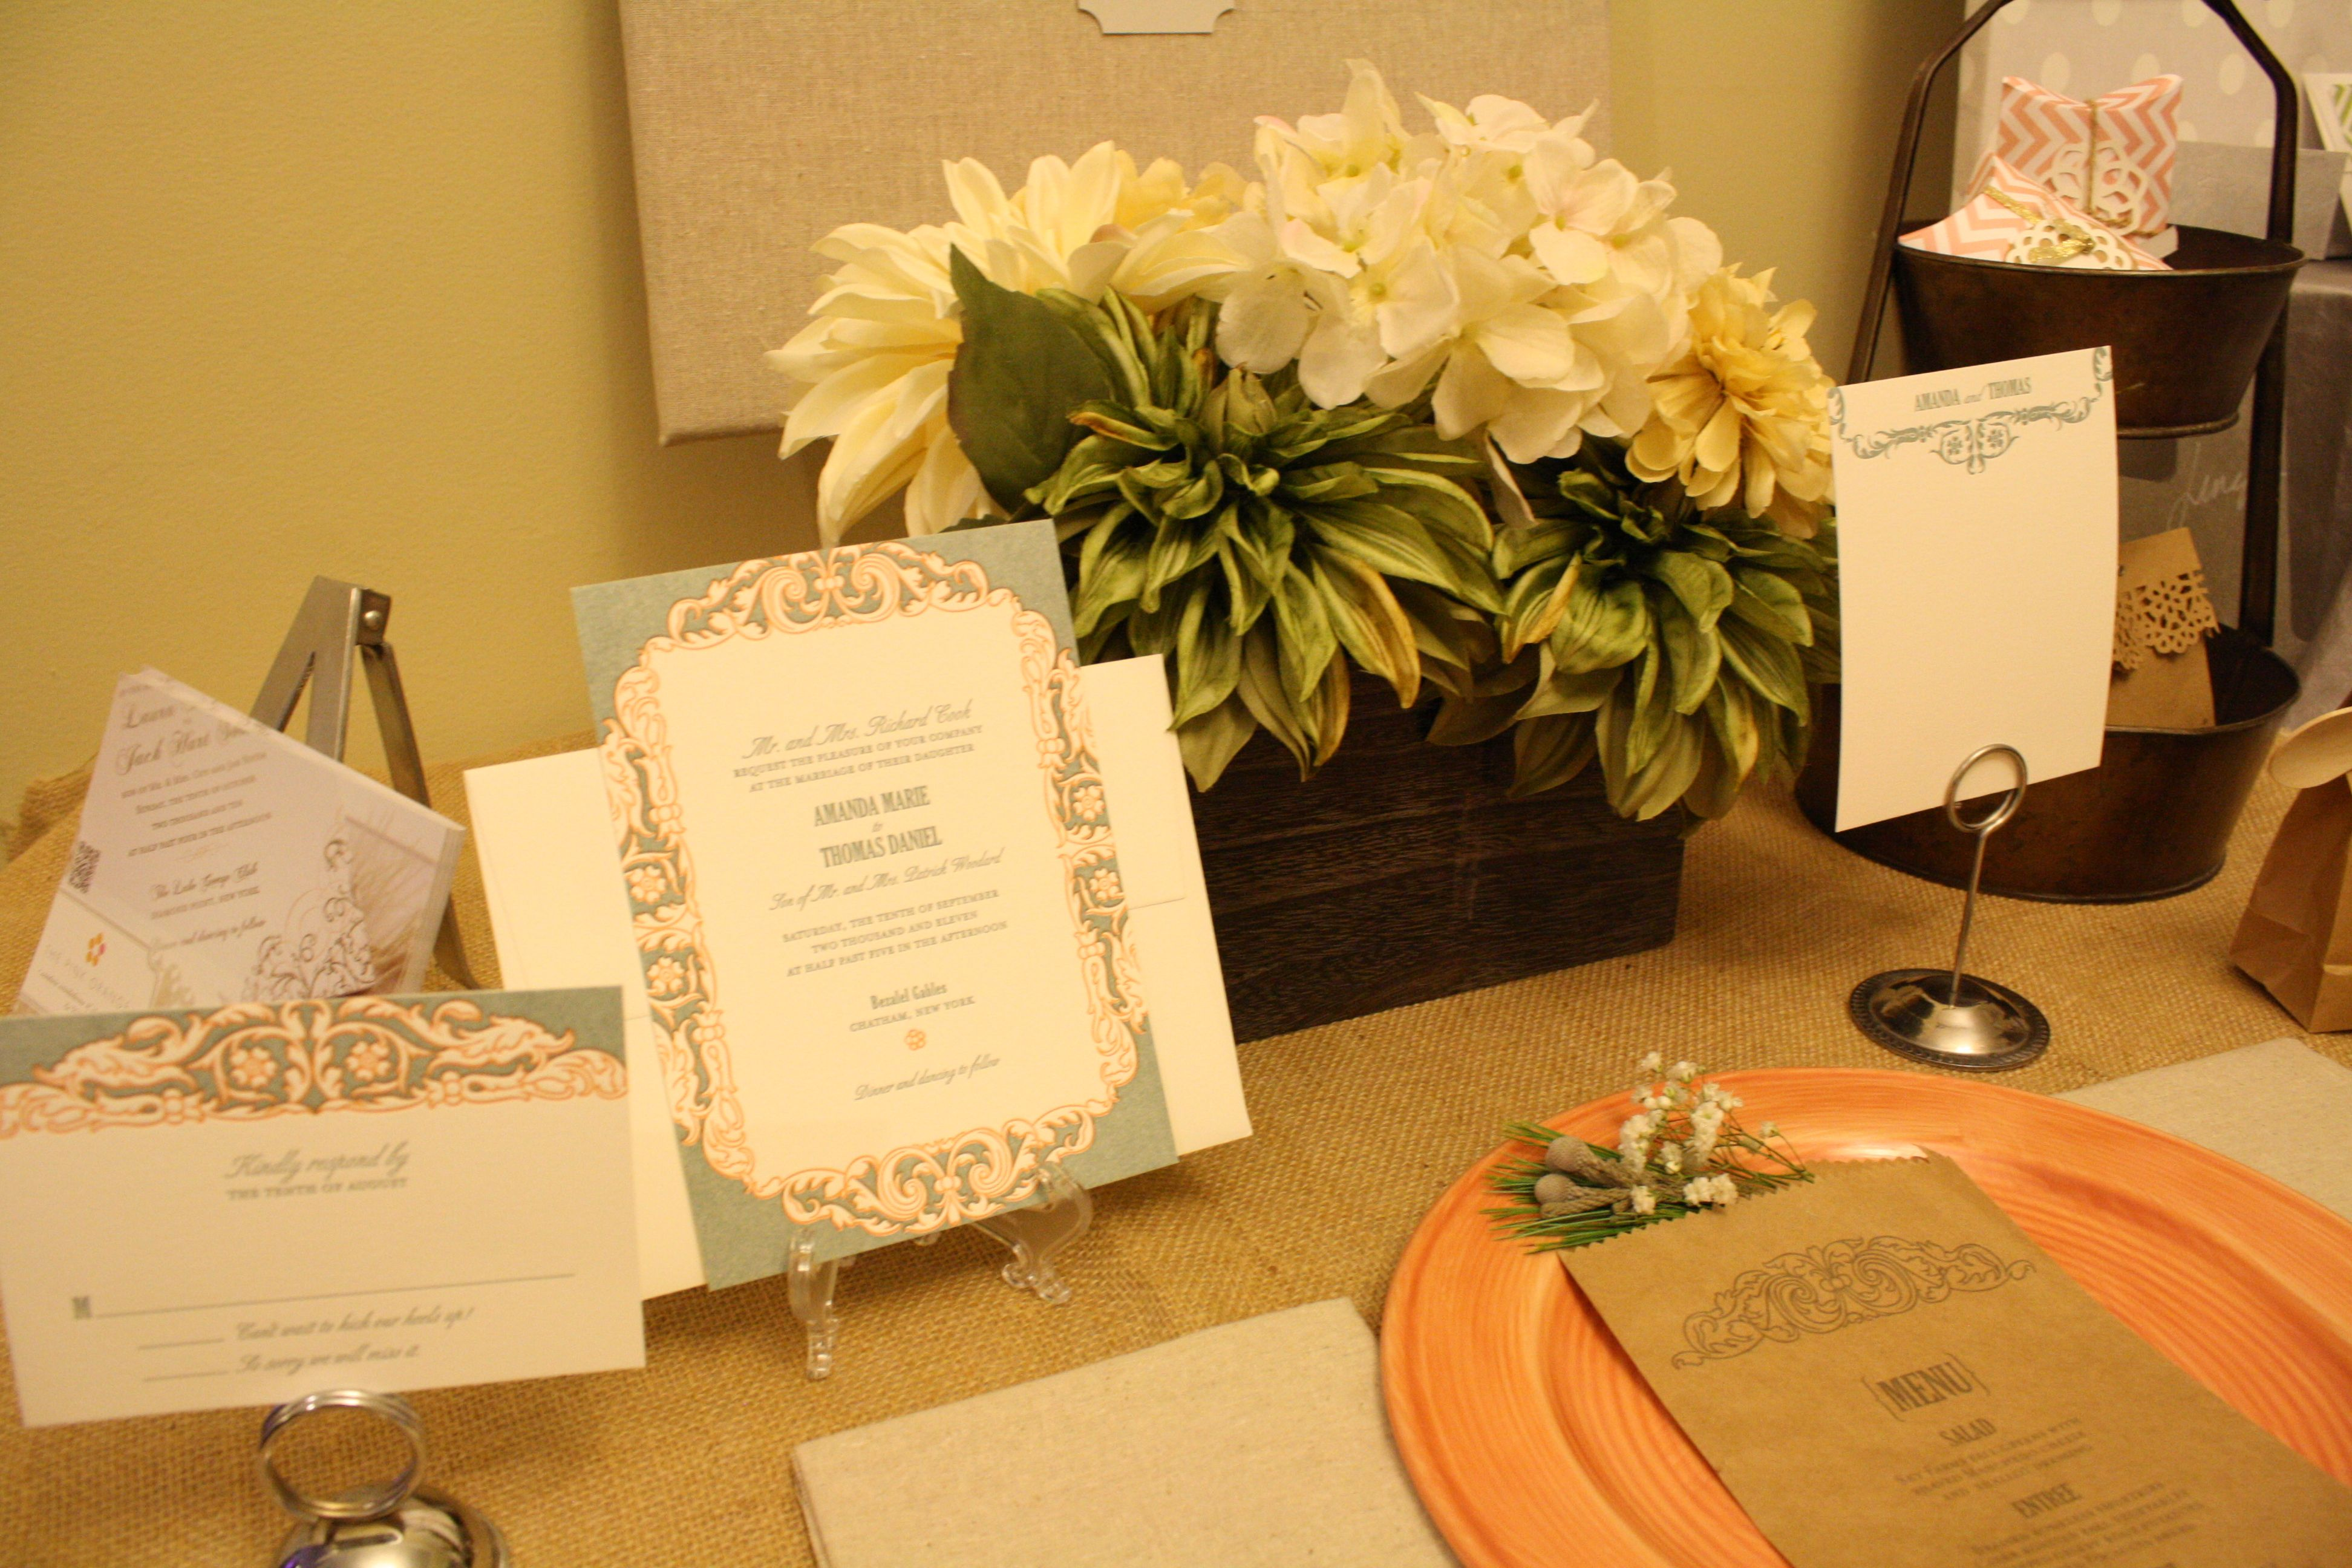 Wedding Invitation Display at the 2012 Bridal Show    Join us November 3 from 1-4pm for our 5th Annual Bridal Show!